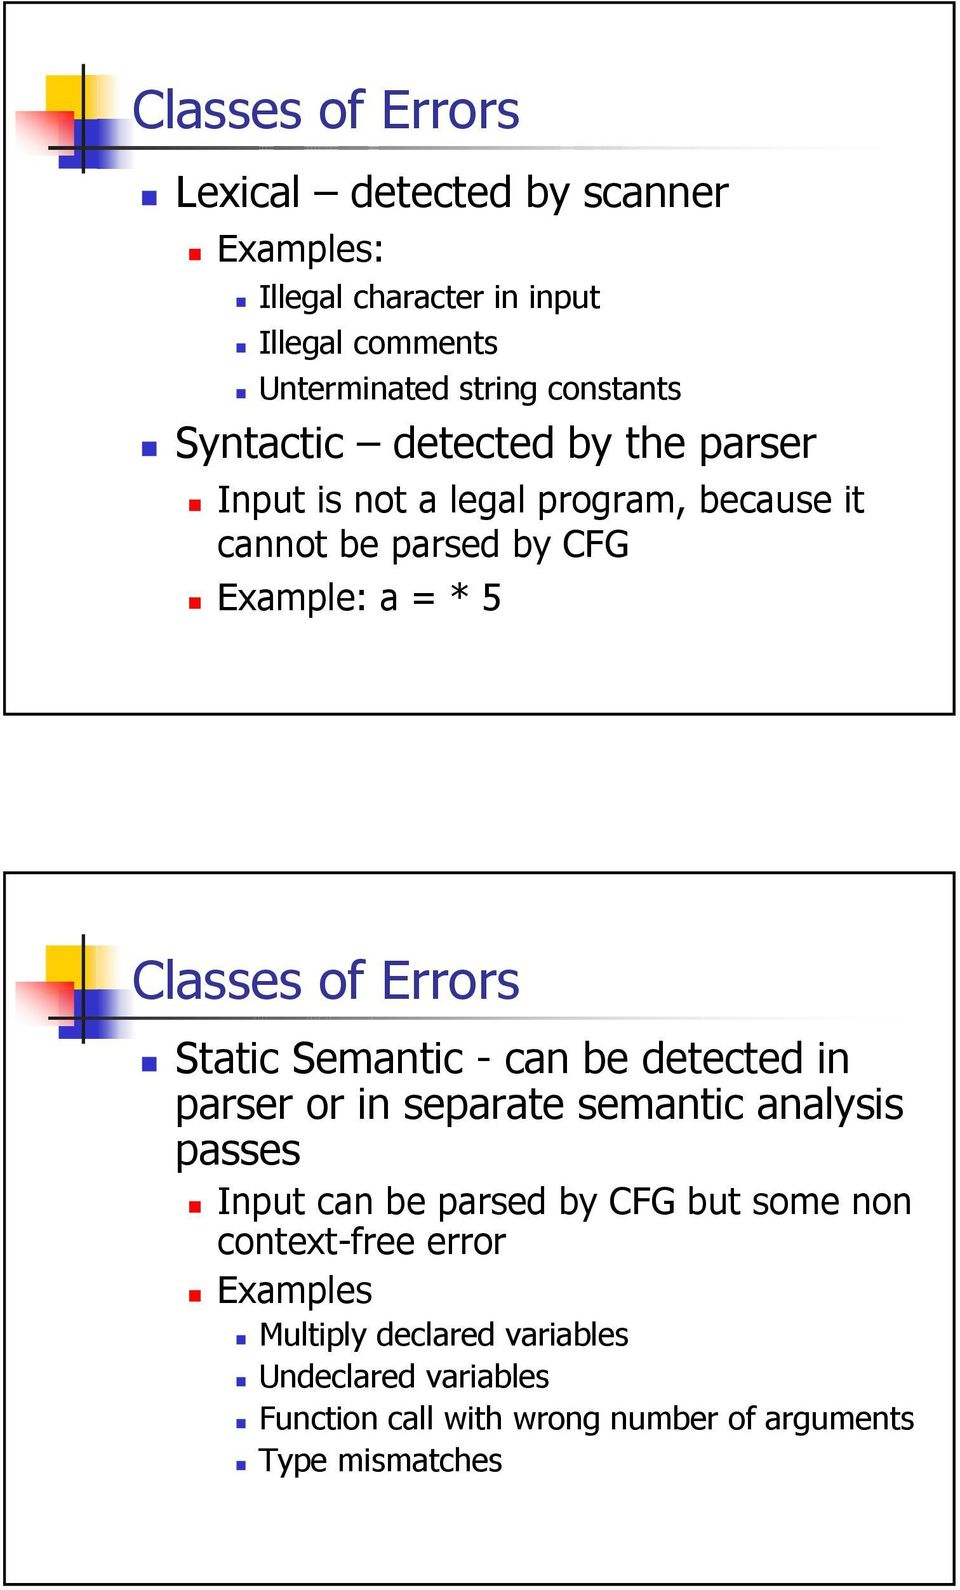 Errors Static Semantic - can be detected in parser or in separate semantic analysis passes Input can be parsed by CFG but some non